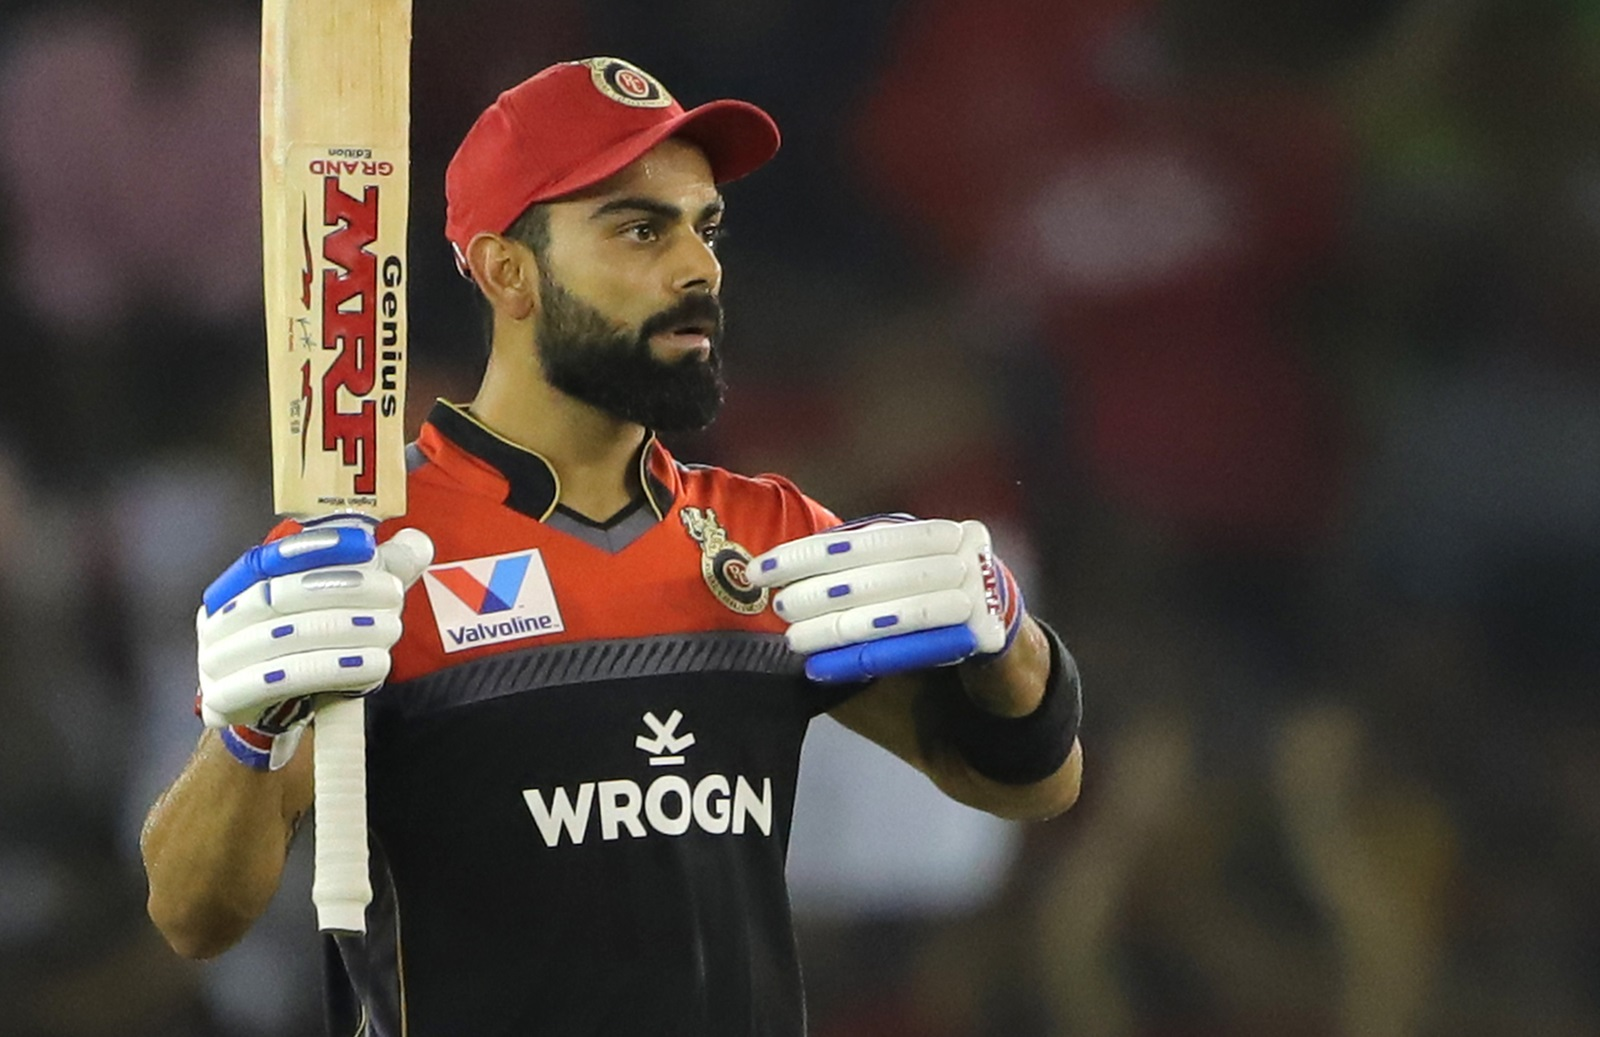 Kohli's RCB finally end record drought | cricket.com.au